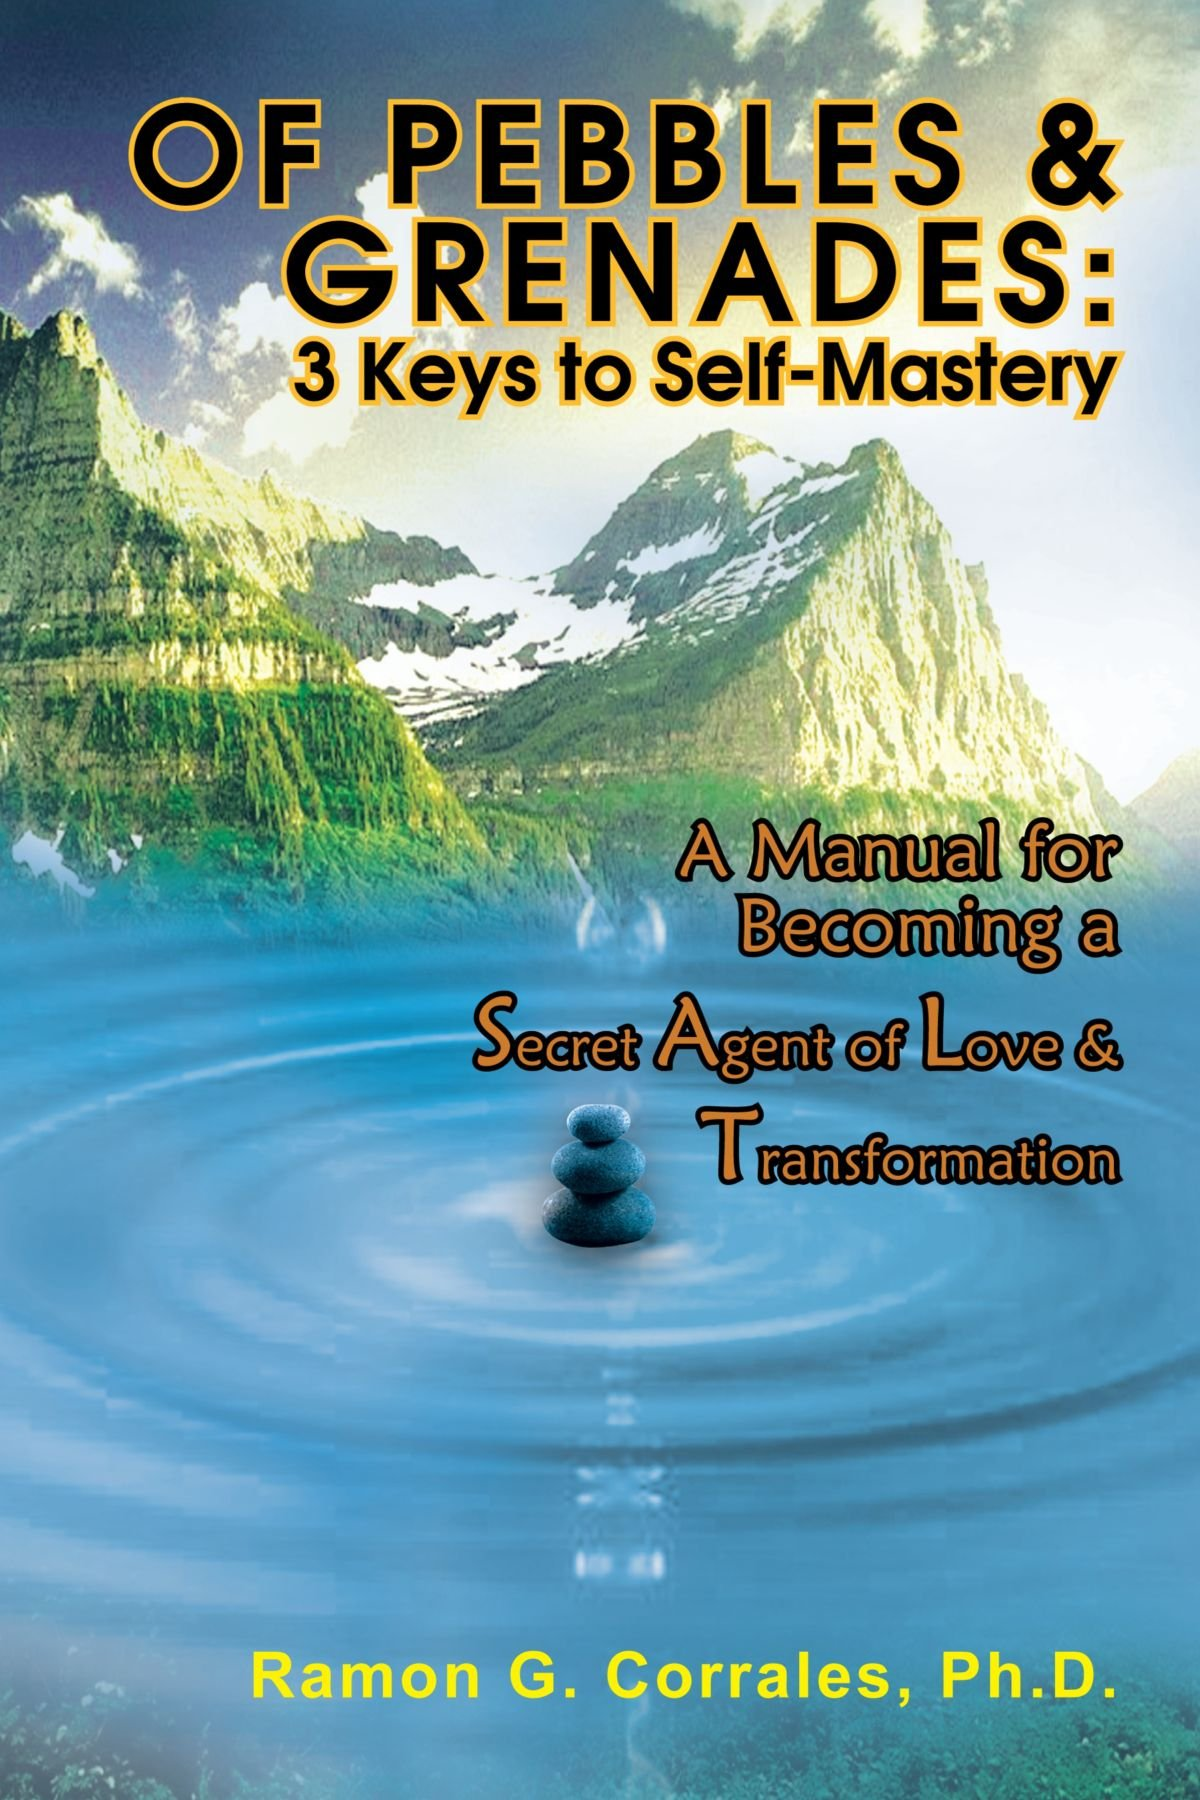 Download Of Pebbles & Grenades: 3 Keys To Self-Mastery: A Manual for Becoming a Secret Agent of Love & Transformation pdf epub